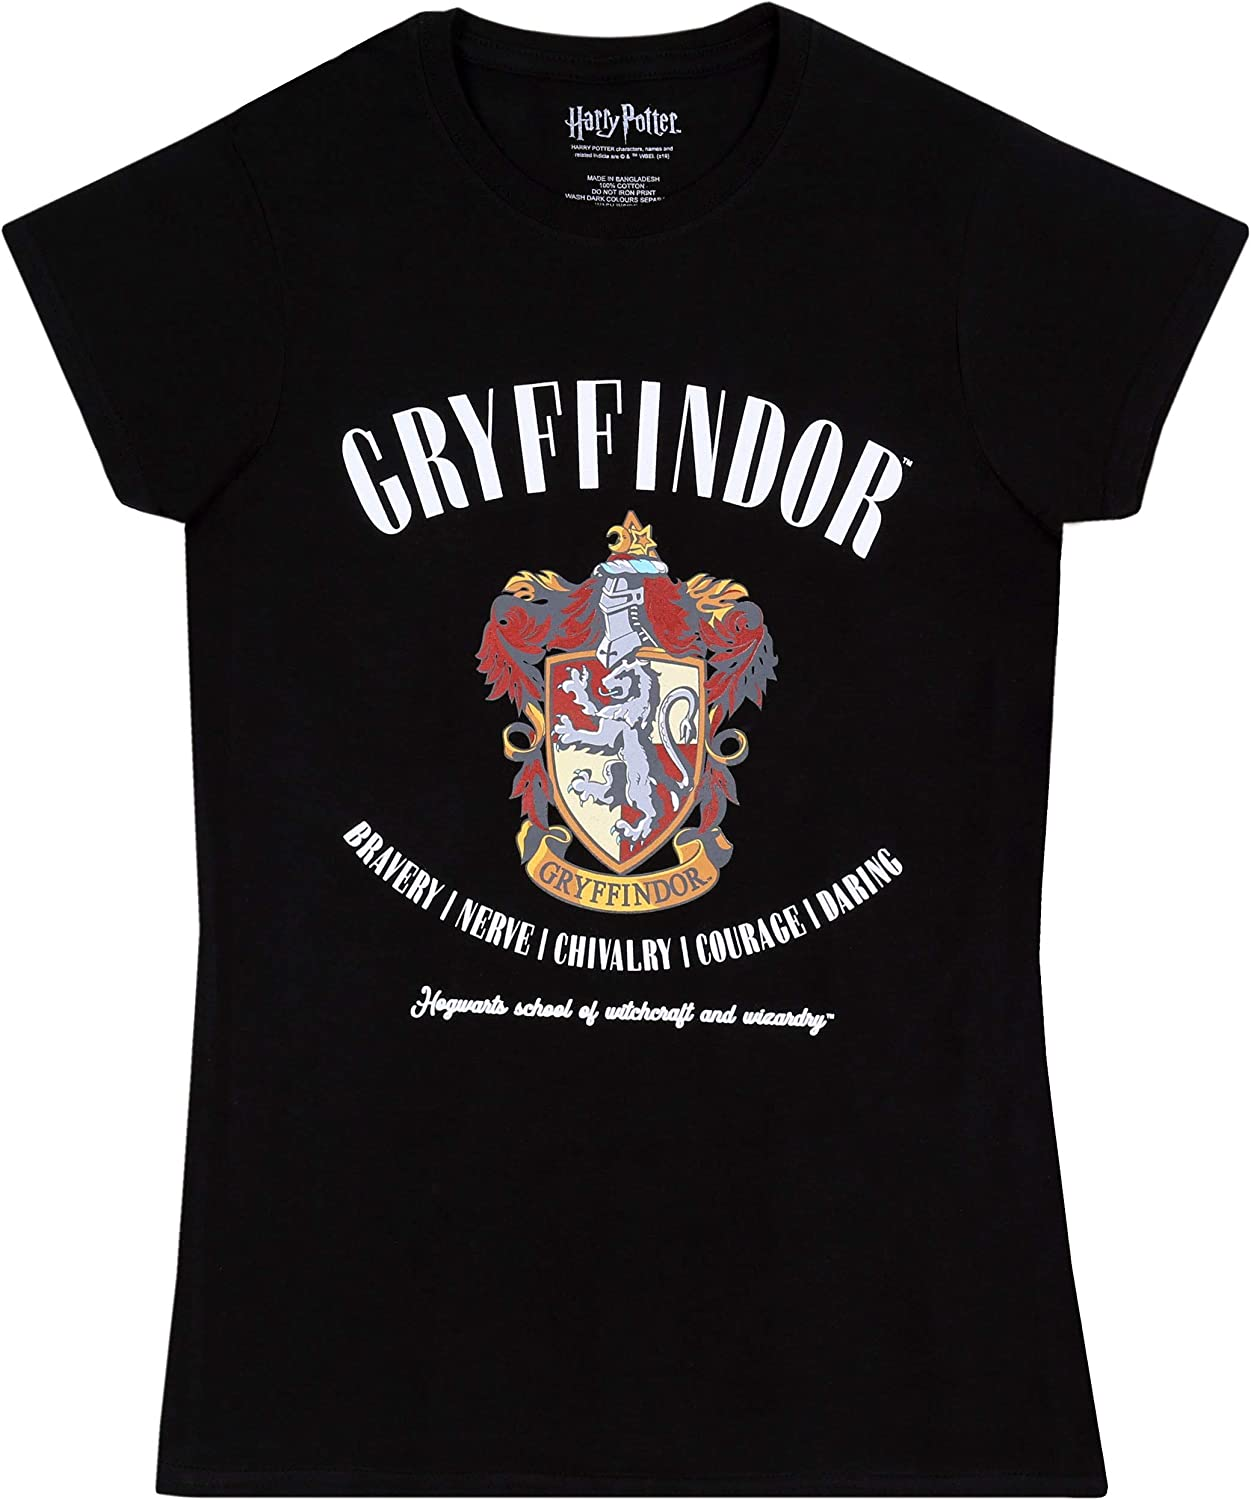 Gryffindor -:- Harry Potter -:- Camiseta Negra, t-Shirt: Amazon.es: Ropa y accesorios